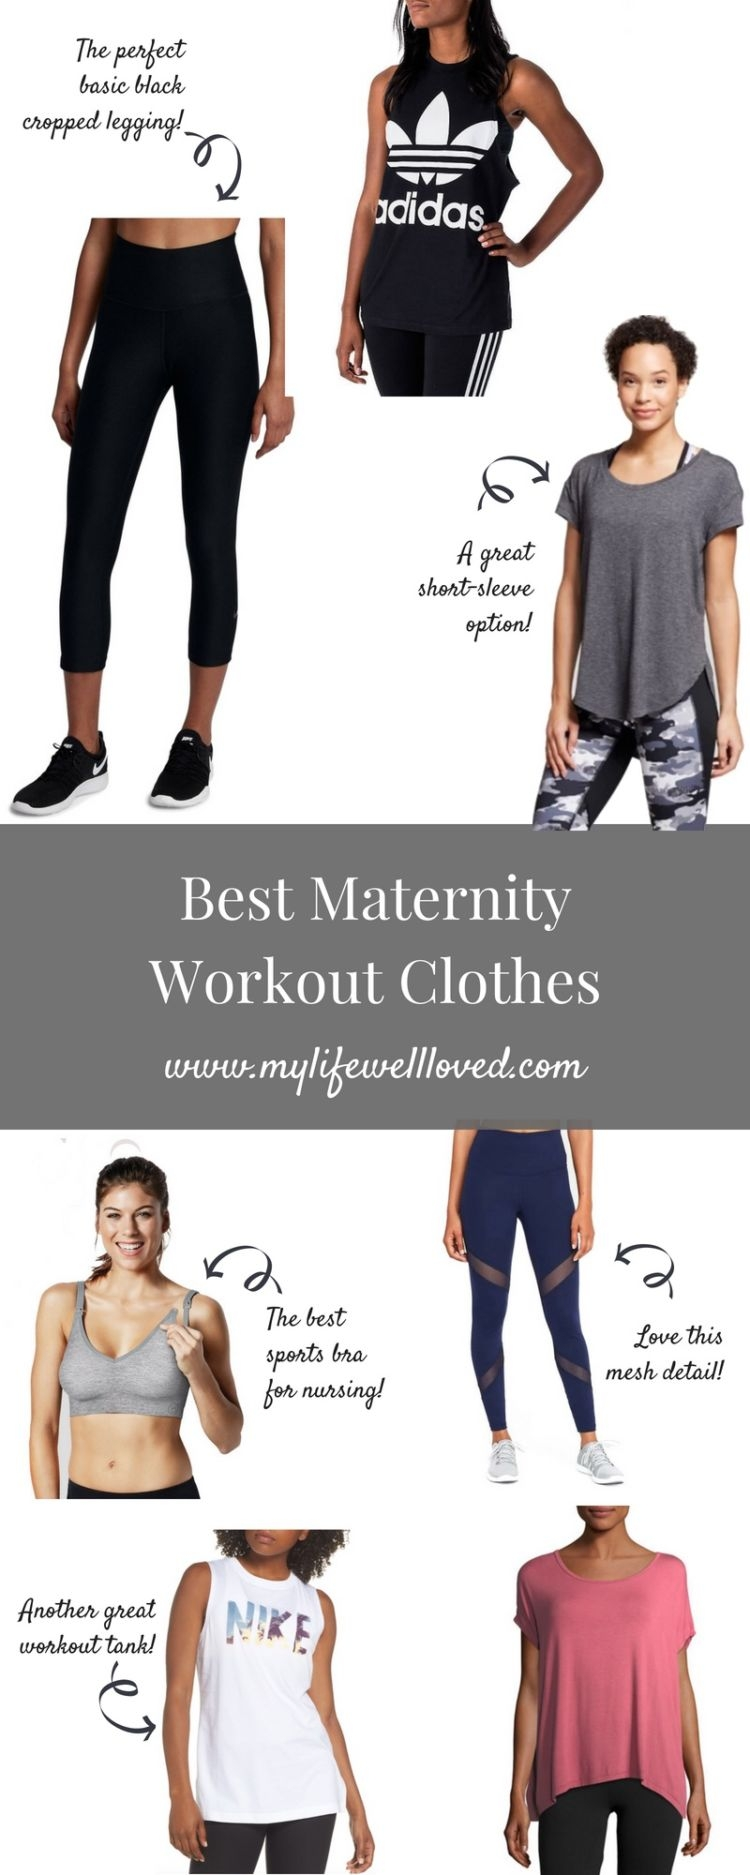 155213ac9d2cf The Best Maternity Workout Clothes - My Life Well Loved